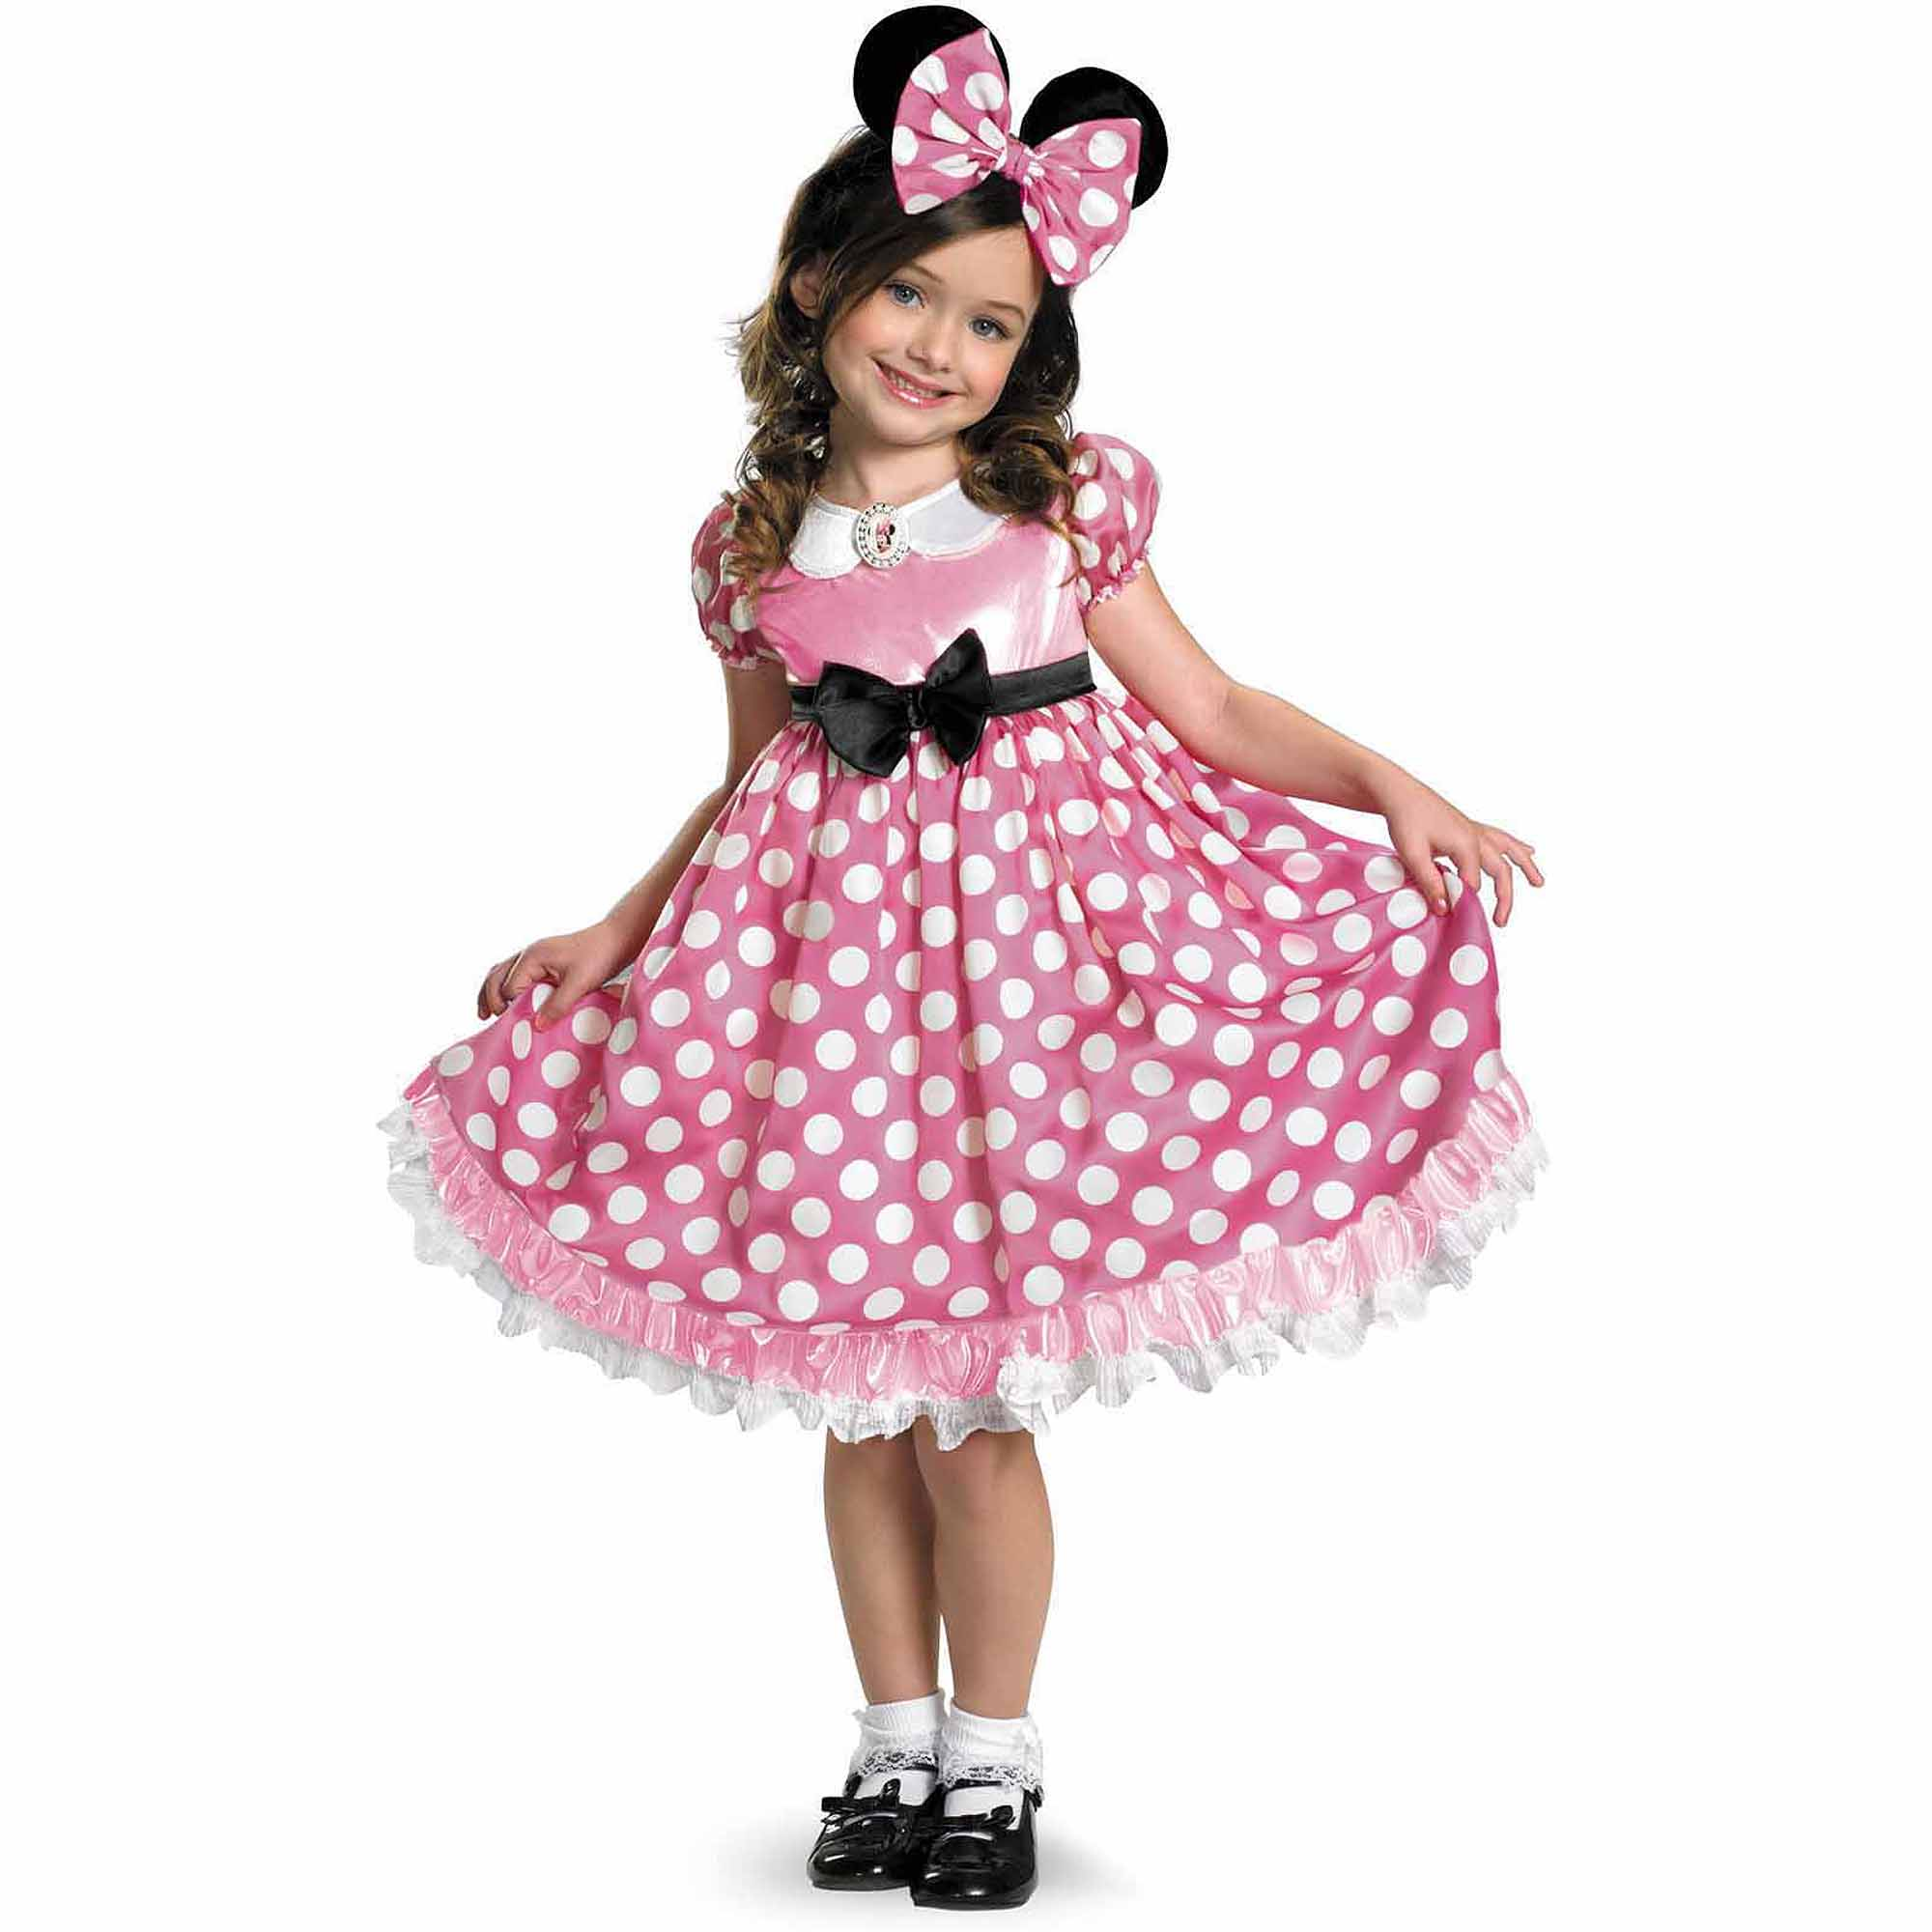 Disney Mickey Mouse Clubhouse Pink Minnie Mouse Glow-in-the-Dark Toddler Halloween Costume